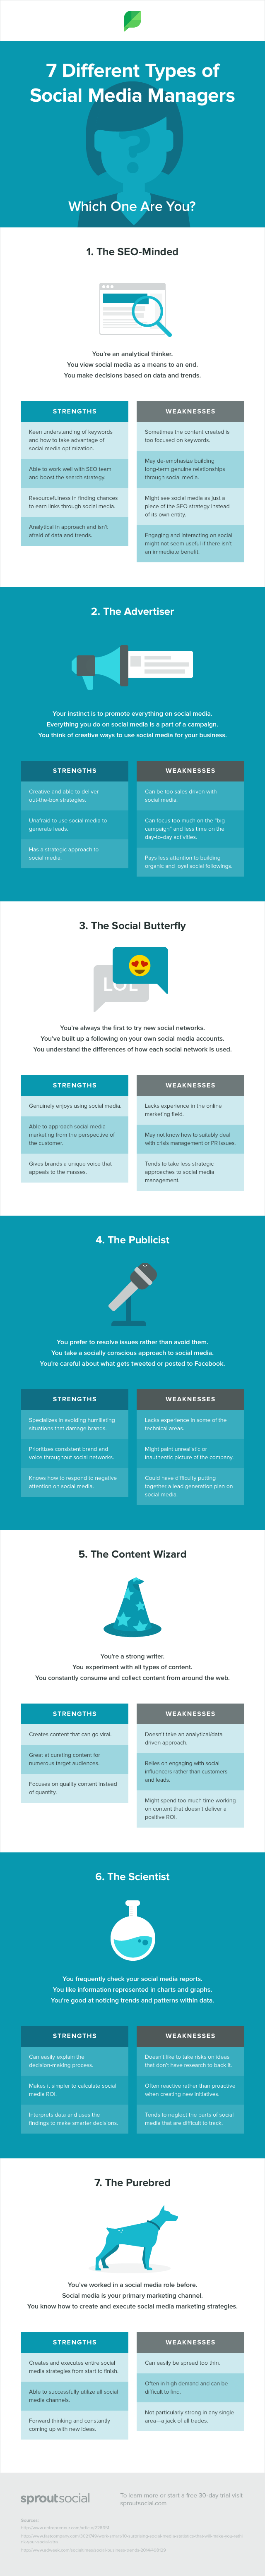 The 7 Different Types Of Social Media Managers